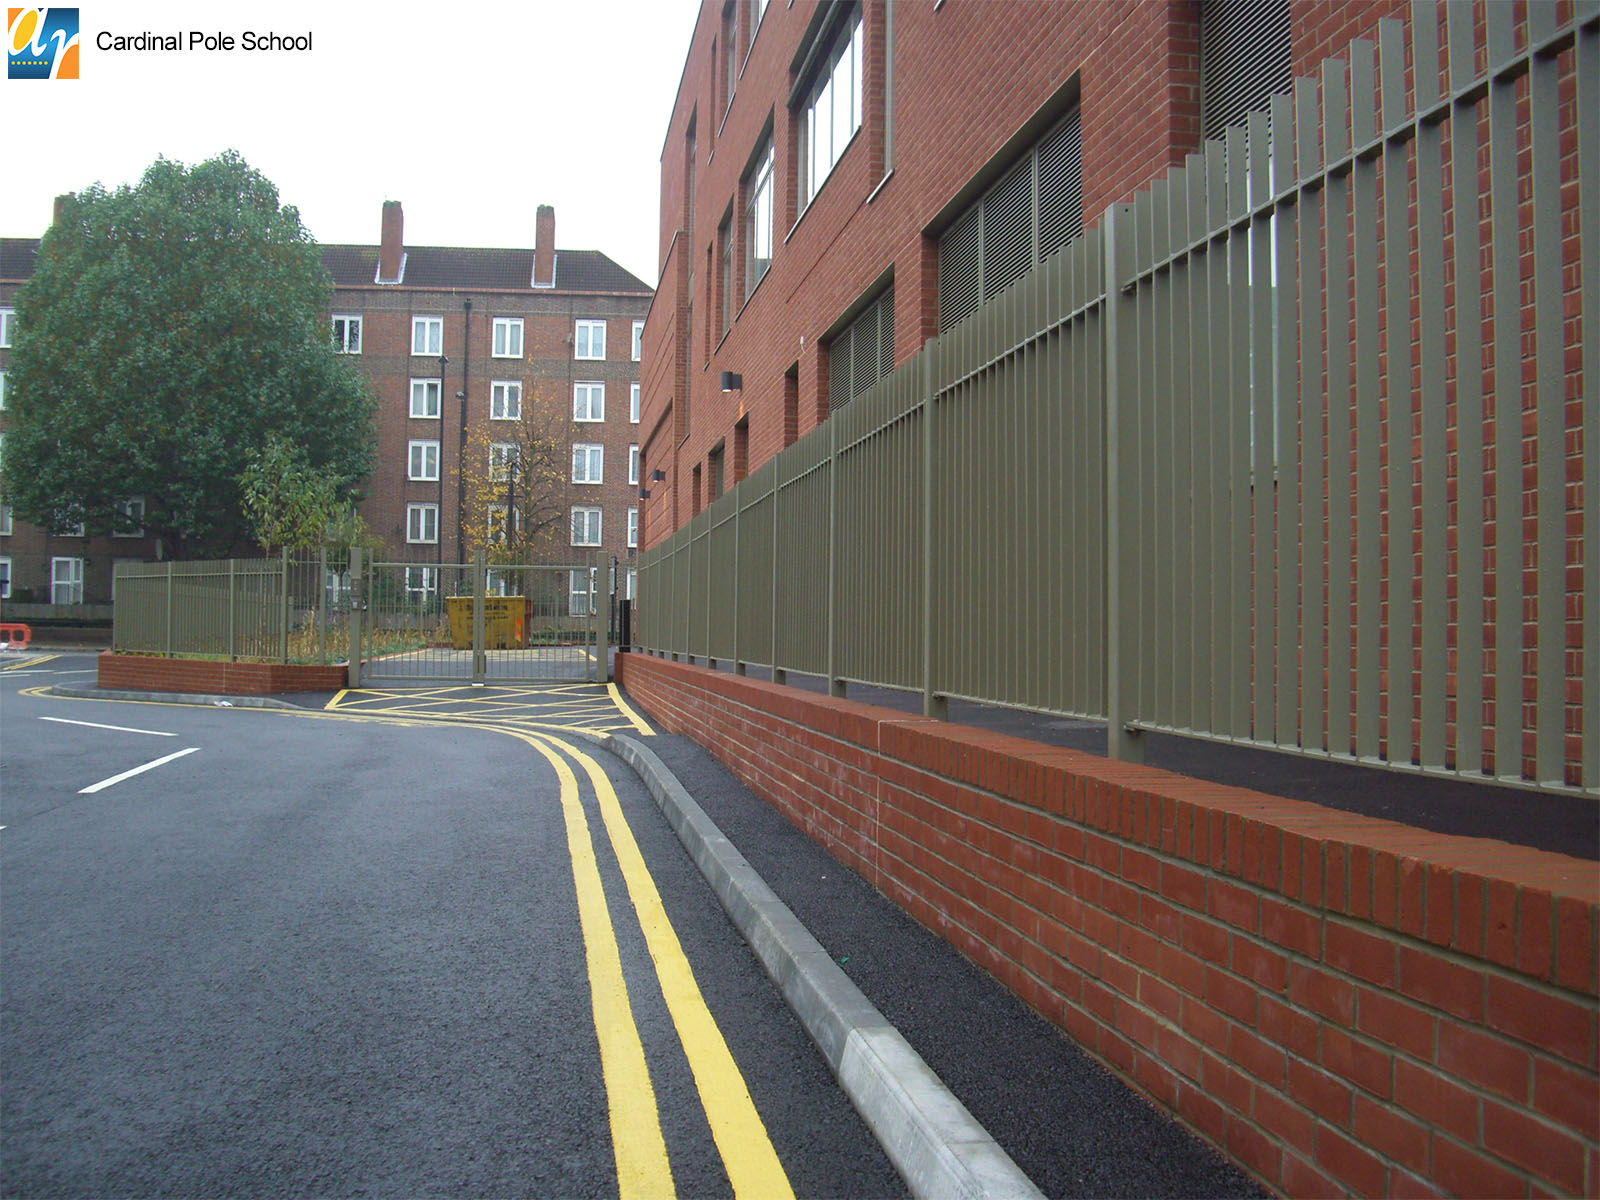 Cardinal Pole School flat bar infill railings